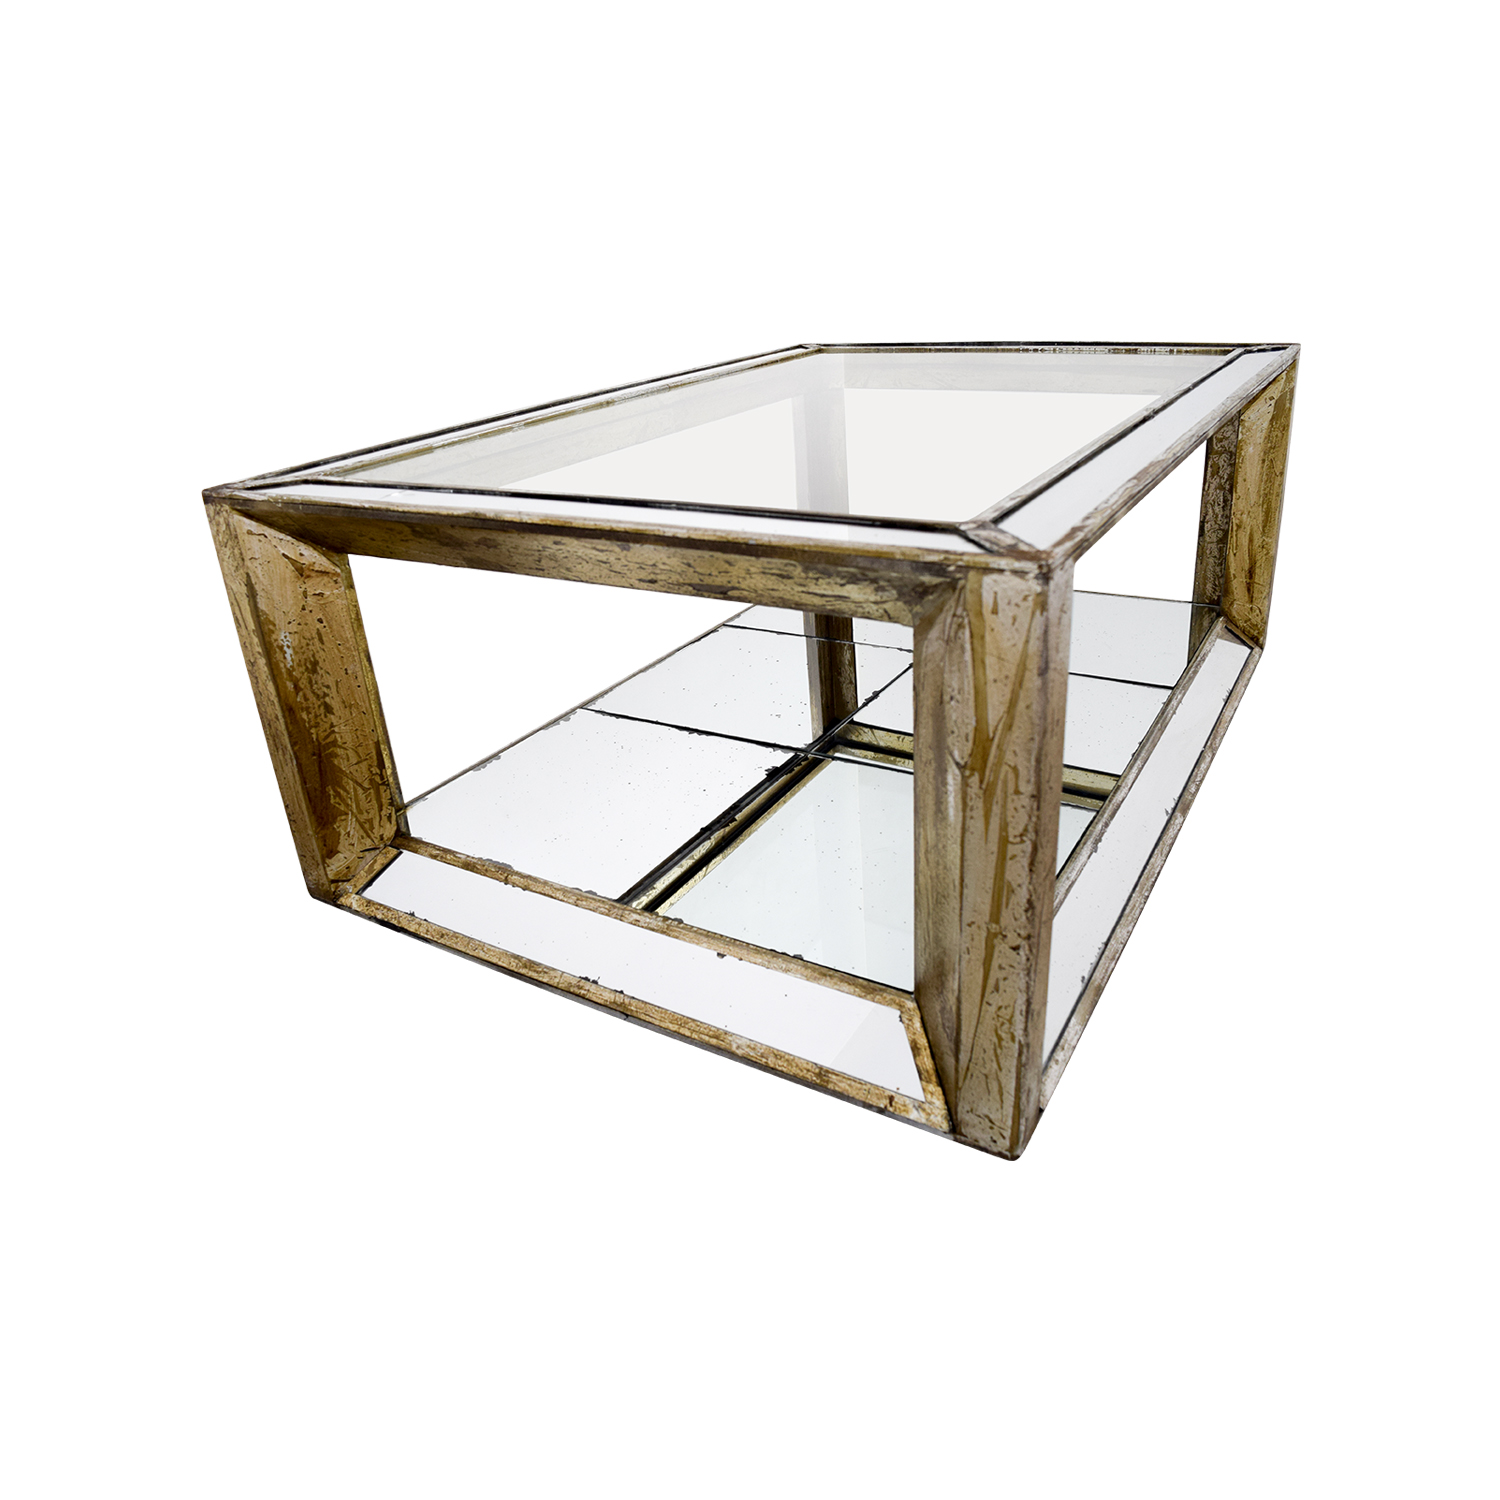 86 off houston furniture houston furniture mirror and glass coffee table tables Mirror glass furniture